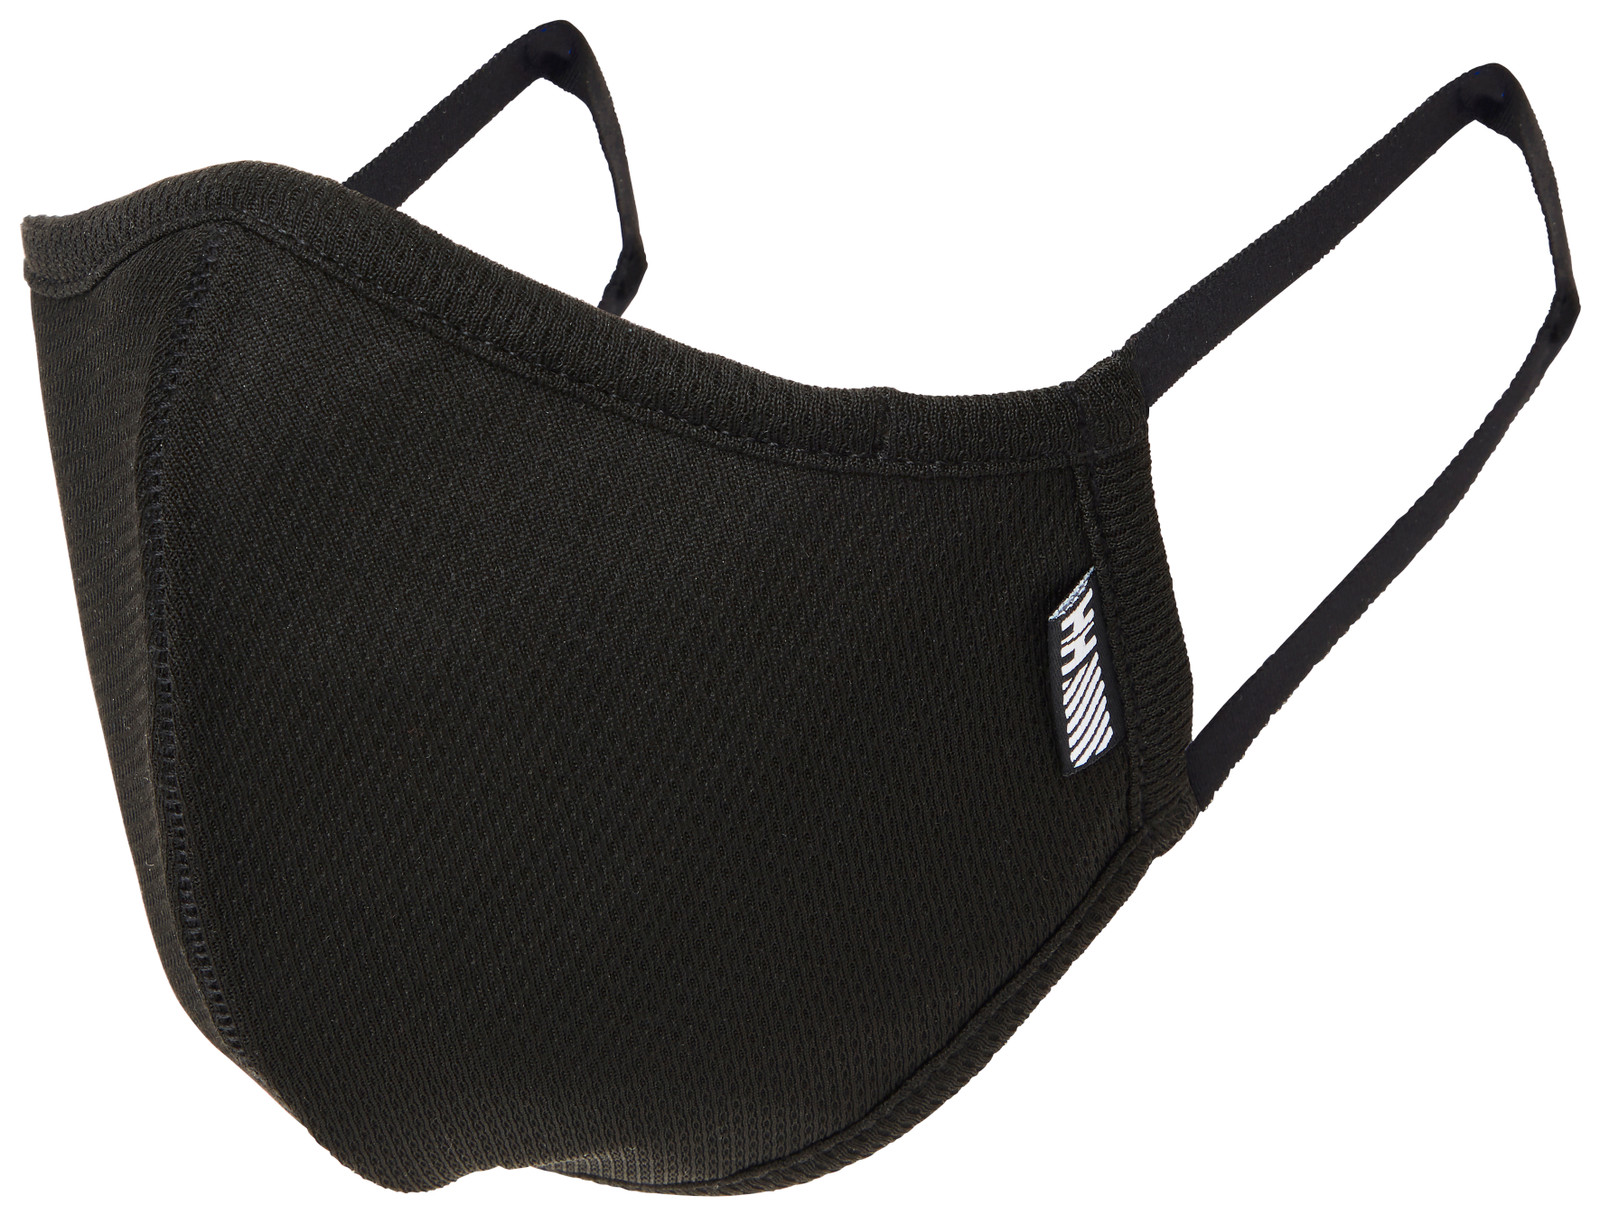 Helly Hansen Lifa Face Mask - Black, Unisex